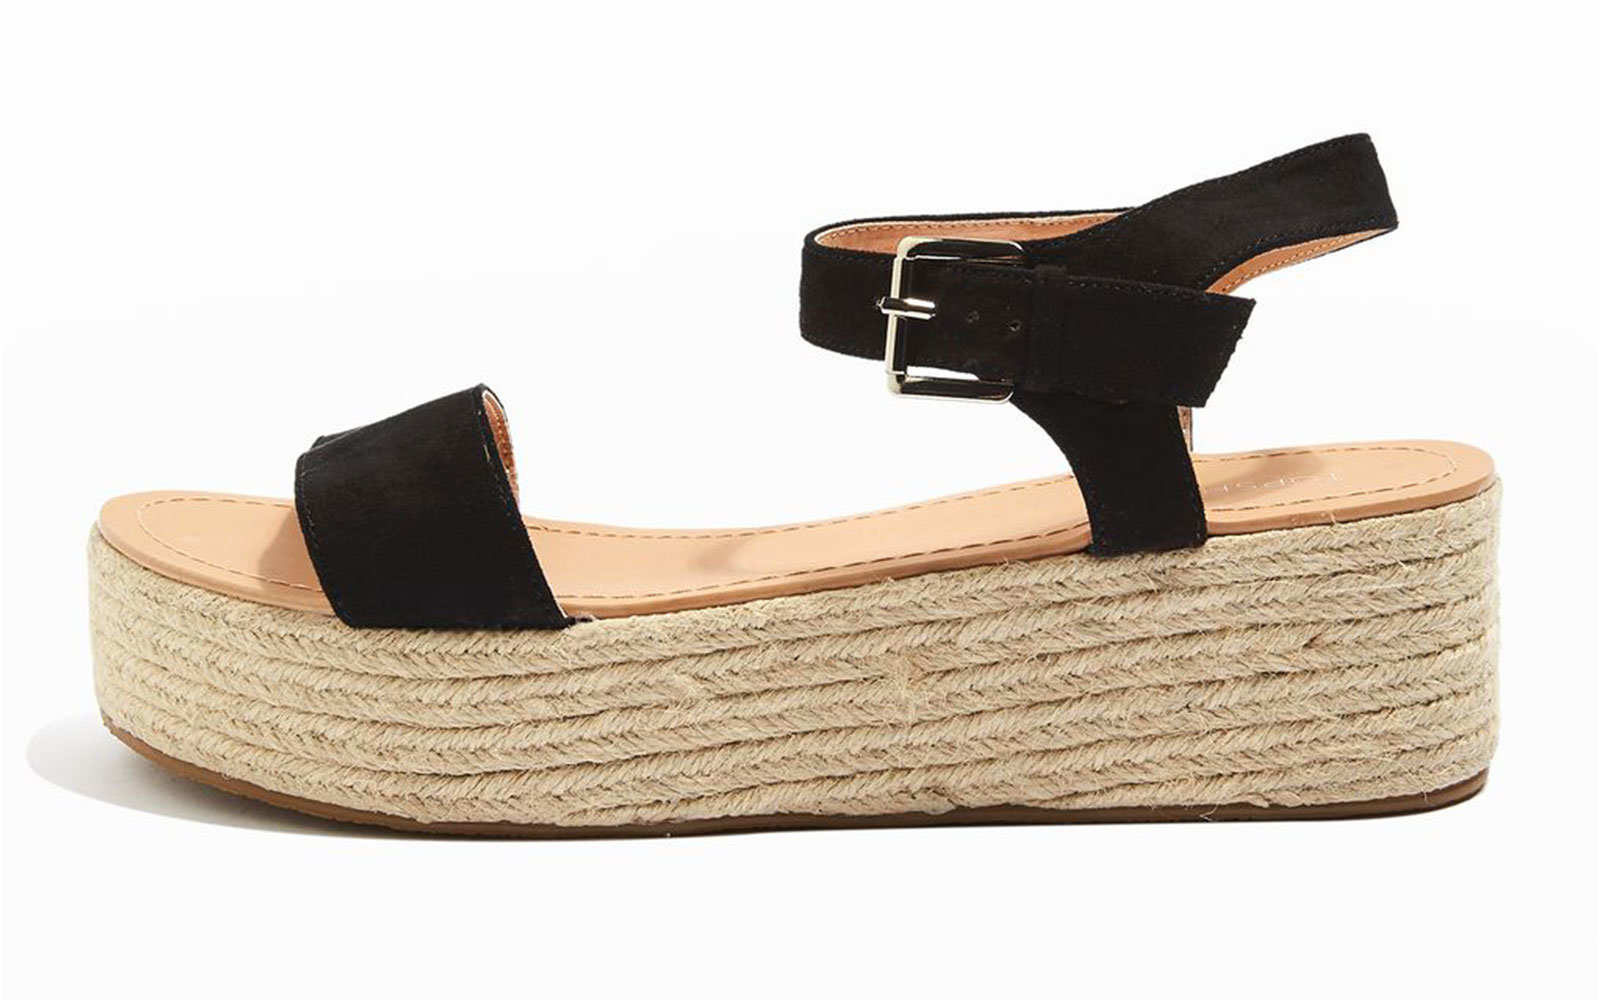 49af11fafc3 Topshop DREAM Espadrille Wedges. Beach Vacation Sandals